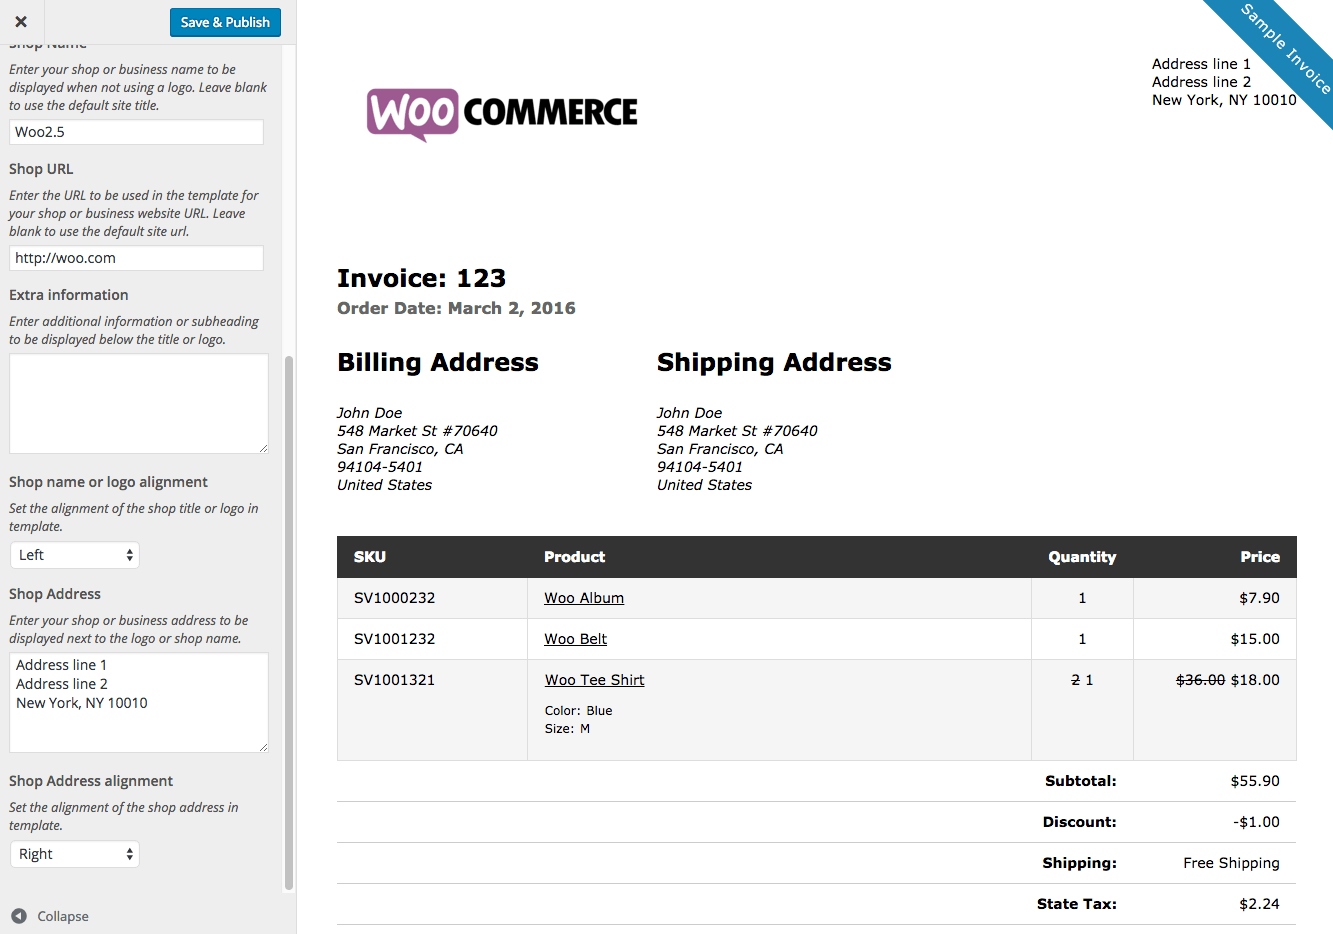 Hius  Marvellous Woocommerce Print Invoices Amp Packing Lists  Woocommerce Docs With Handsome Woocommerce Print Invoices  Packing Lists Customizer With Beauteous Receipt And Payment Format Also Mate Receipt In Addition Confirmation Of Receipt Of Email And Duplicate Receipt Book Personalised As Well As Sale Of Car Receipt Template Additionally Hand Receipt  From Docswoocommercecom With Hius  Handsome Woocommerce Print Invoices Amp Packing Lists  Woocommerce Docs With Beauteous Woocommerce Print Invoices  Packing Lists Customizer And Marvellous Receipt And Payment Format Also Mate Receipt In Addition Confirmation Of Receipt Of Email From Docswoocommercecom